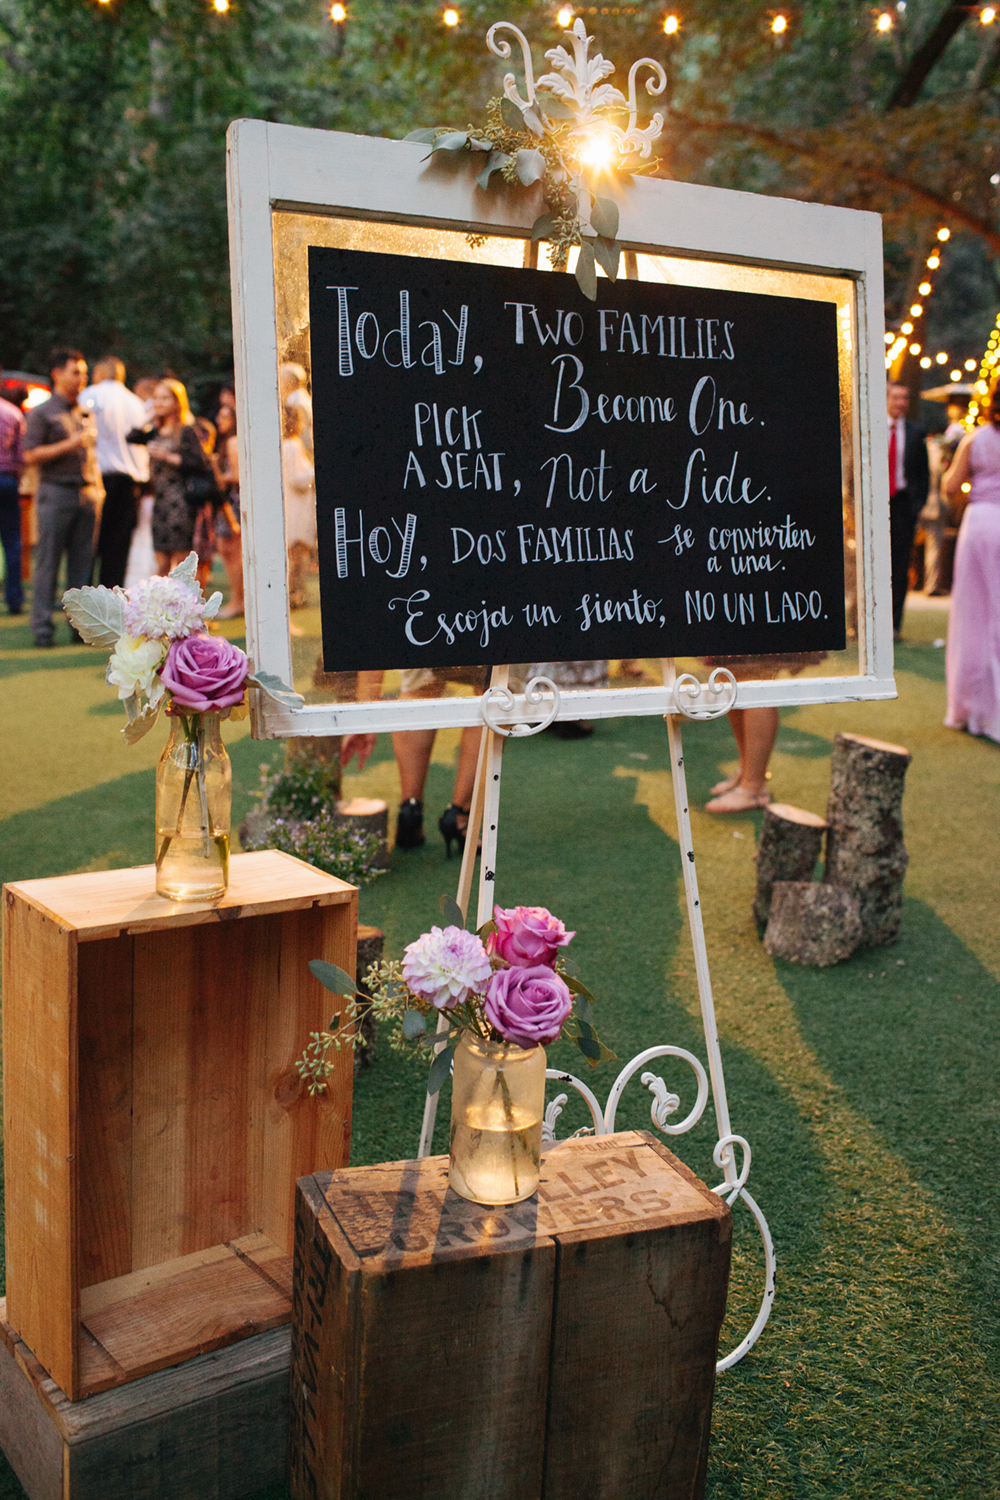 Saratoga-Springs-Outdoor-Rustic-Wedding-Details-13.JPG